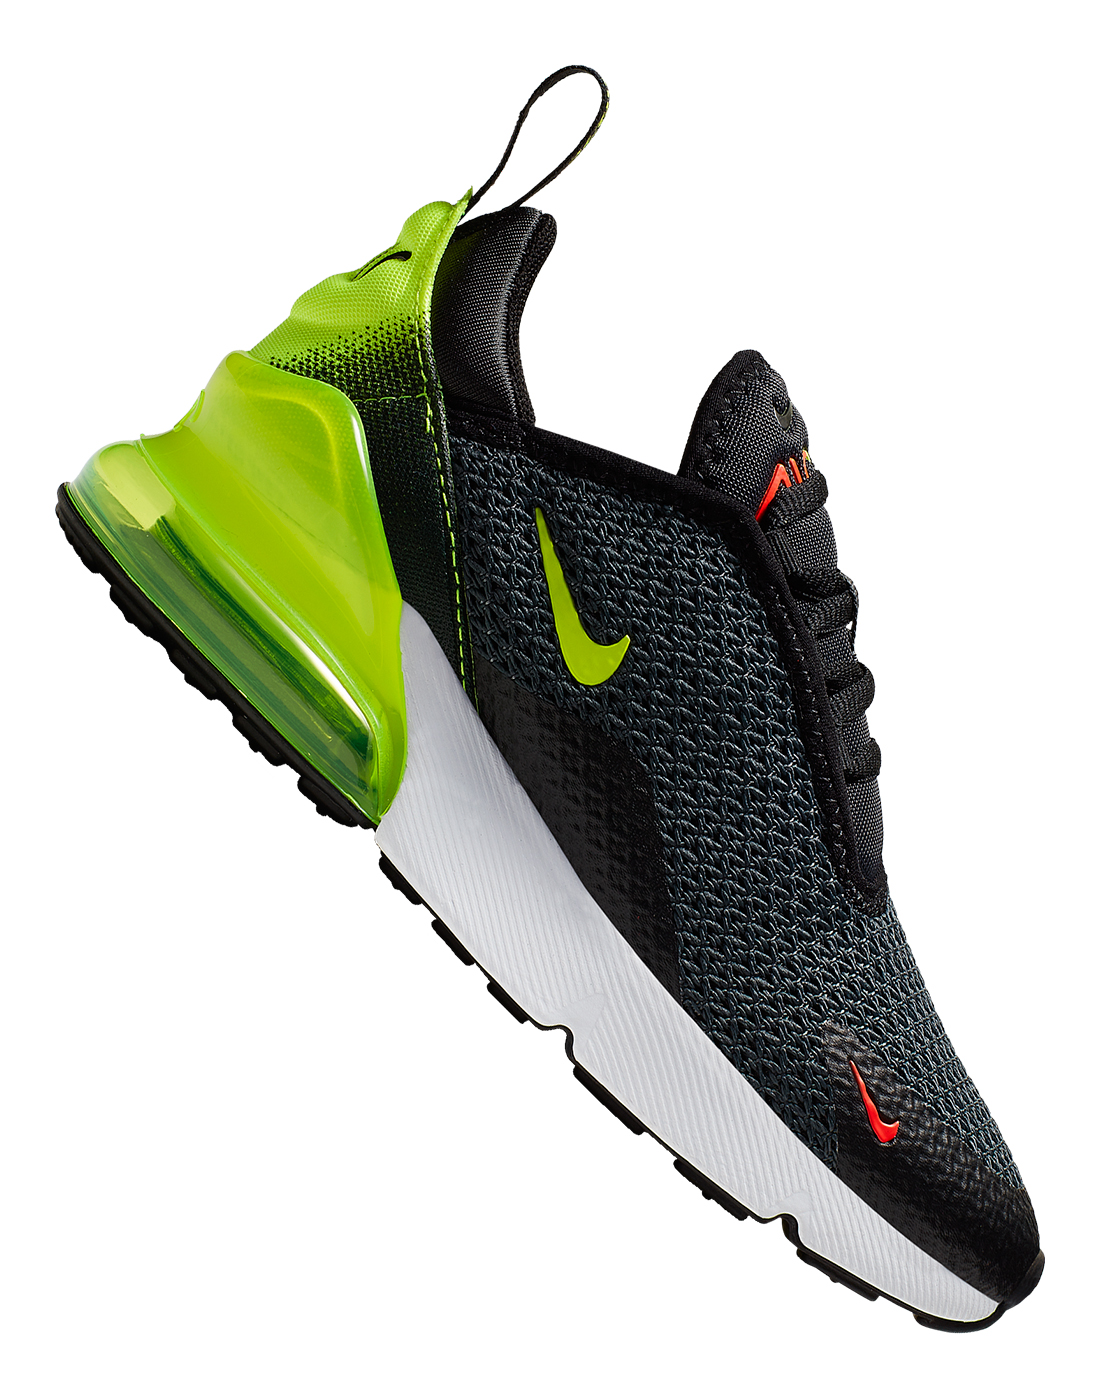 uk availability 3b834 f4ffa Younger Kids Air Max 270